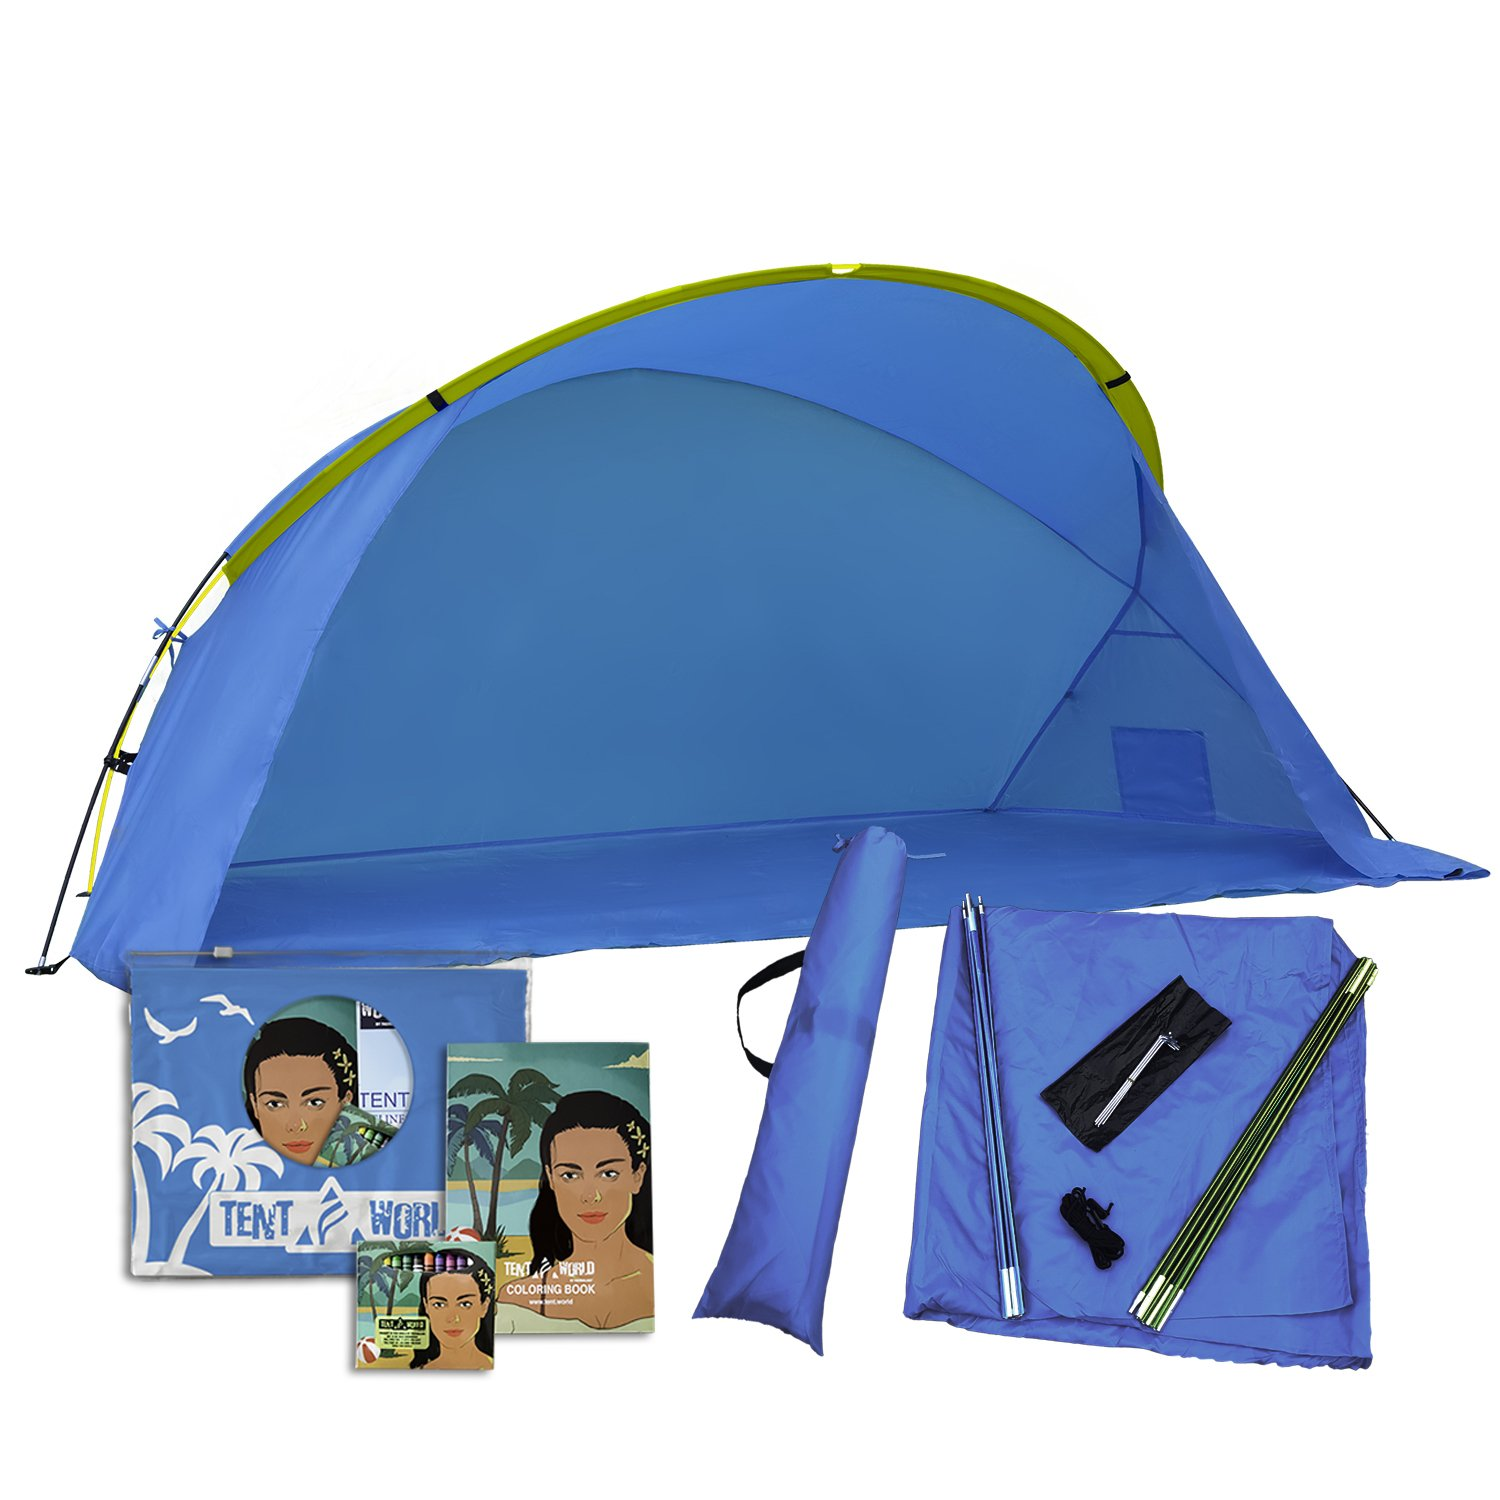 Easiest Beach Tent, Sun Shade Canopy 'Venus': Provide UV Protection for Your Family. Waterproof Shelters For Rain & Pacific Breeze, Easy Up Canopies, Sports Cabana Tents, Roadtrip Sunshade Shack. Blue